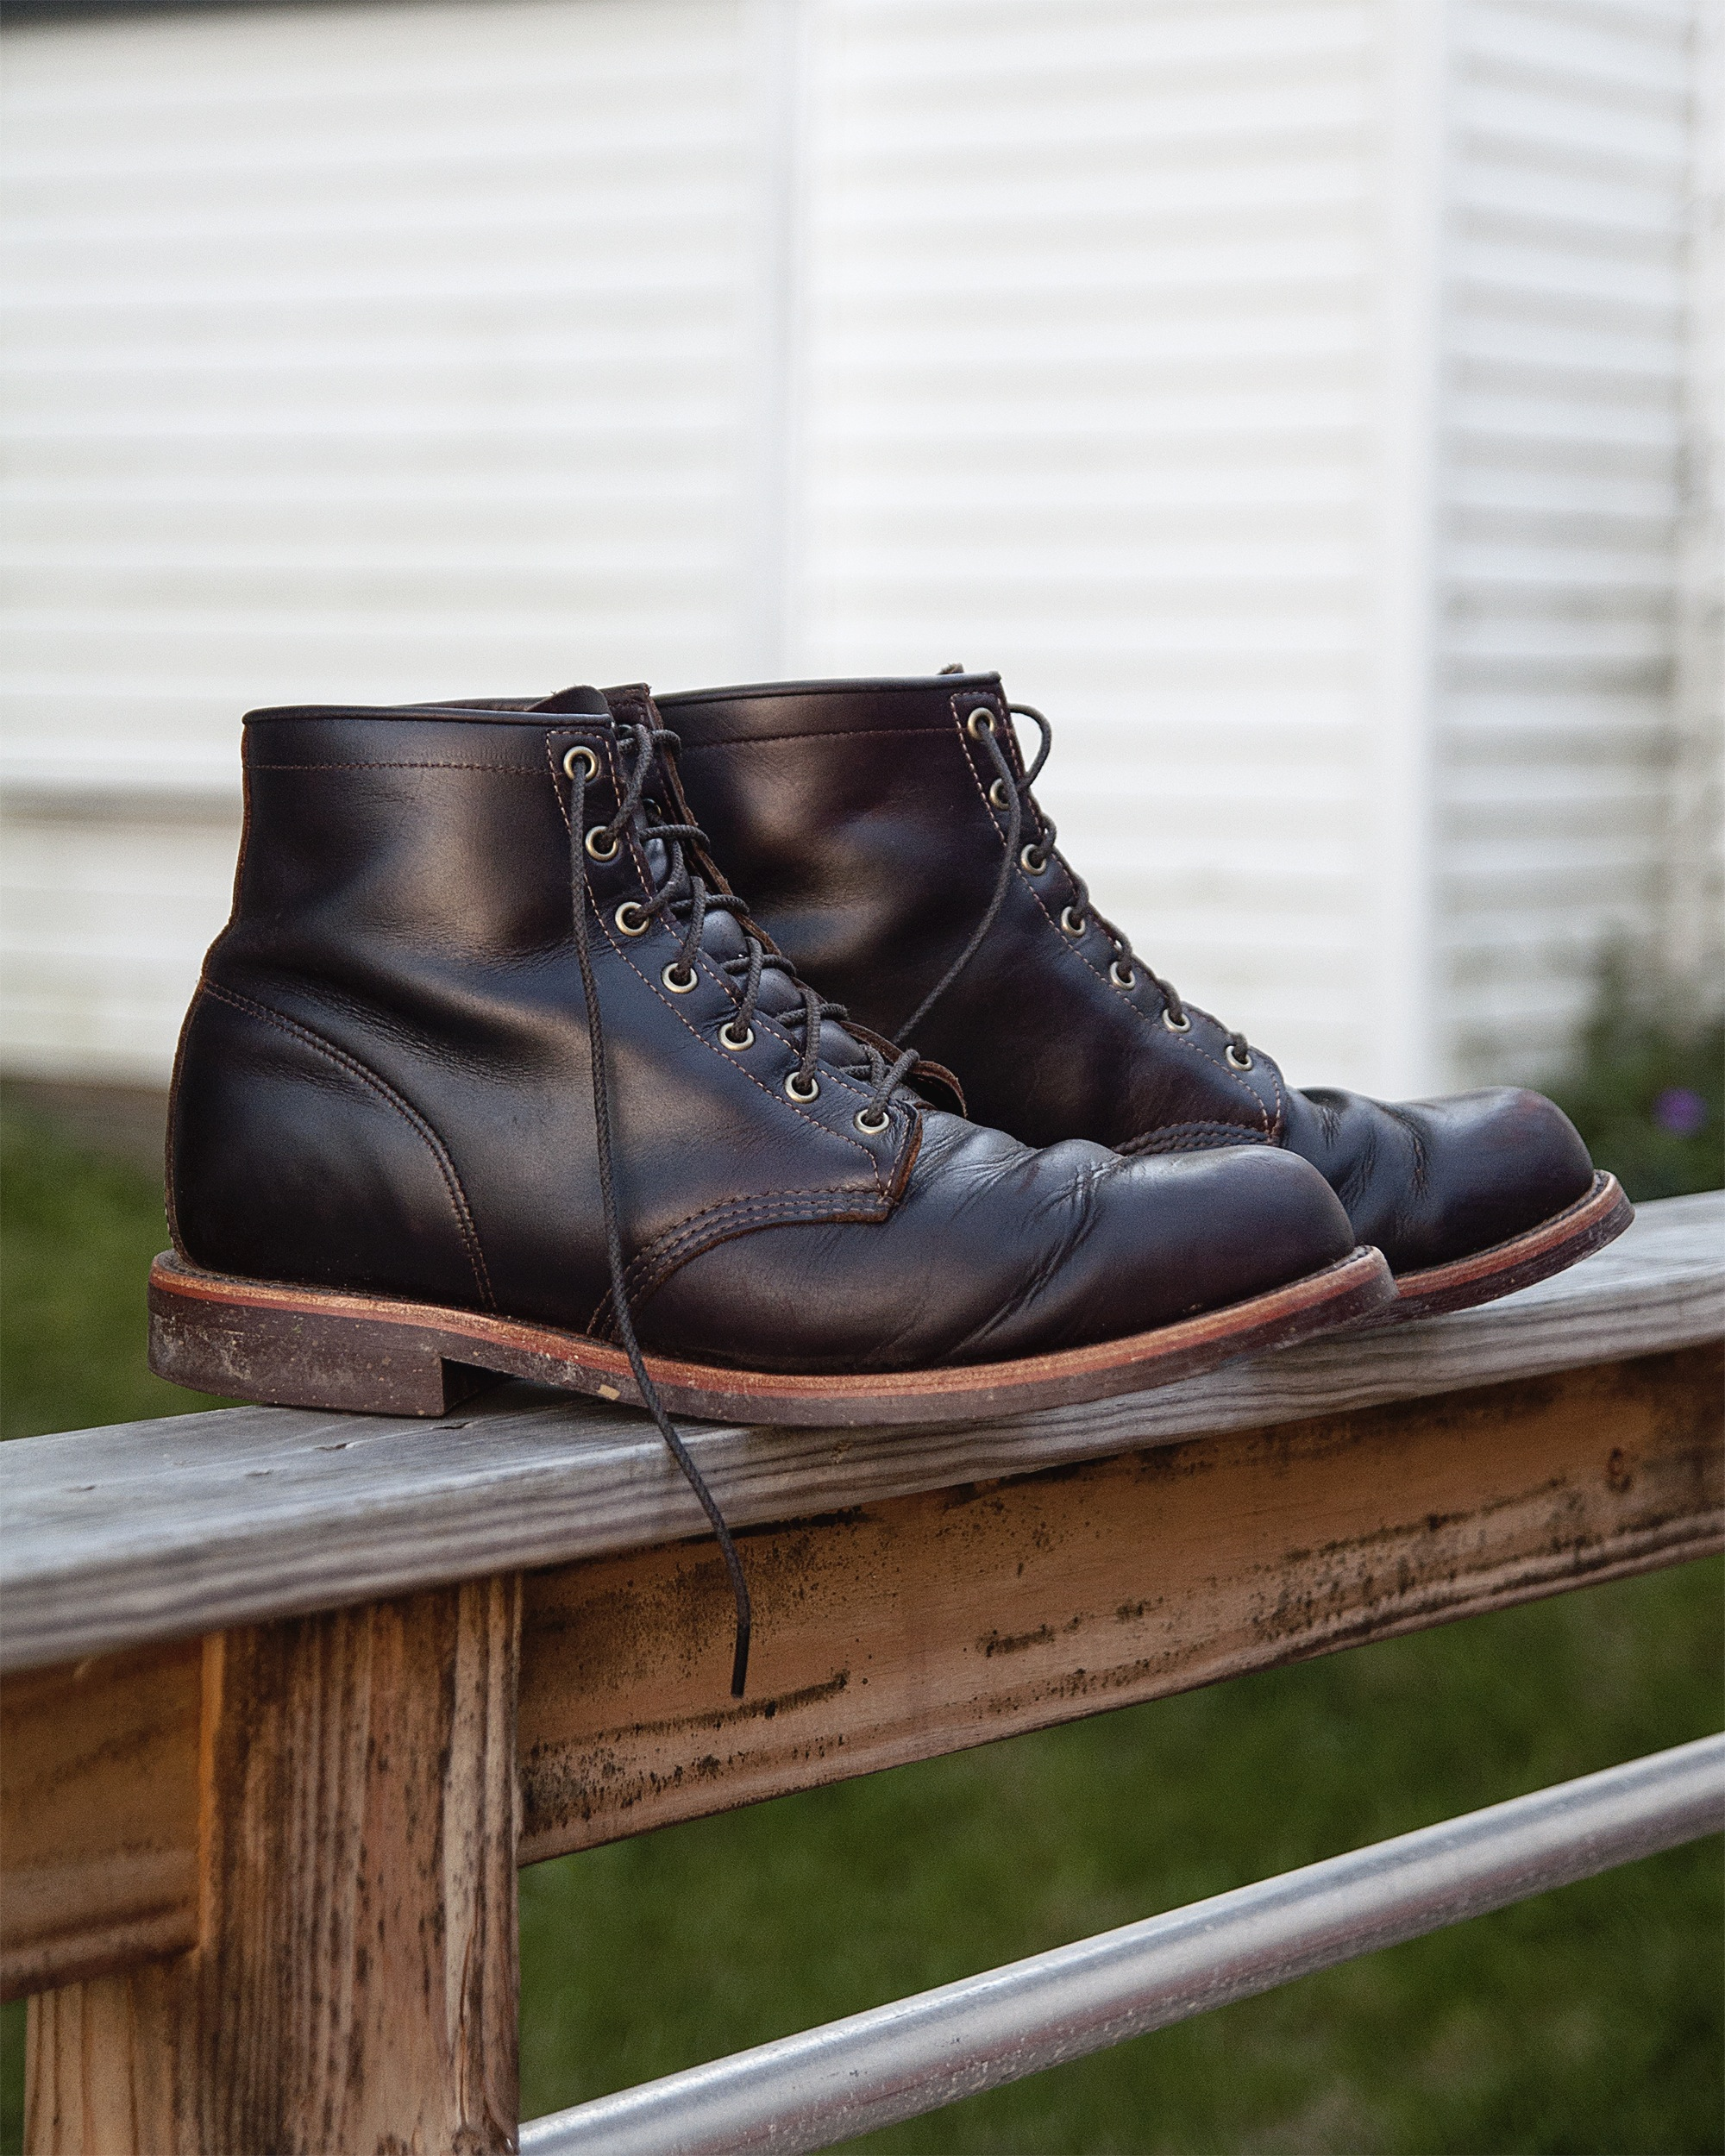 911760ae8f9 Calling all LLBean Katahdin Iron Works Boots owners | Page 77 ...